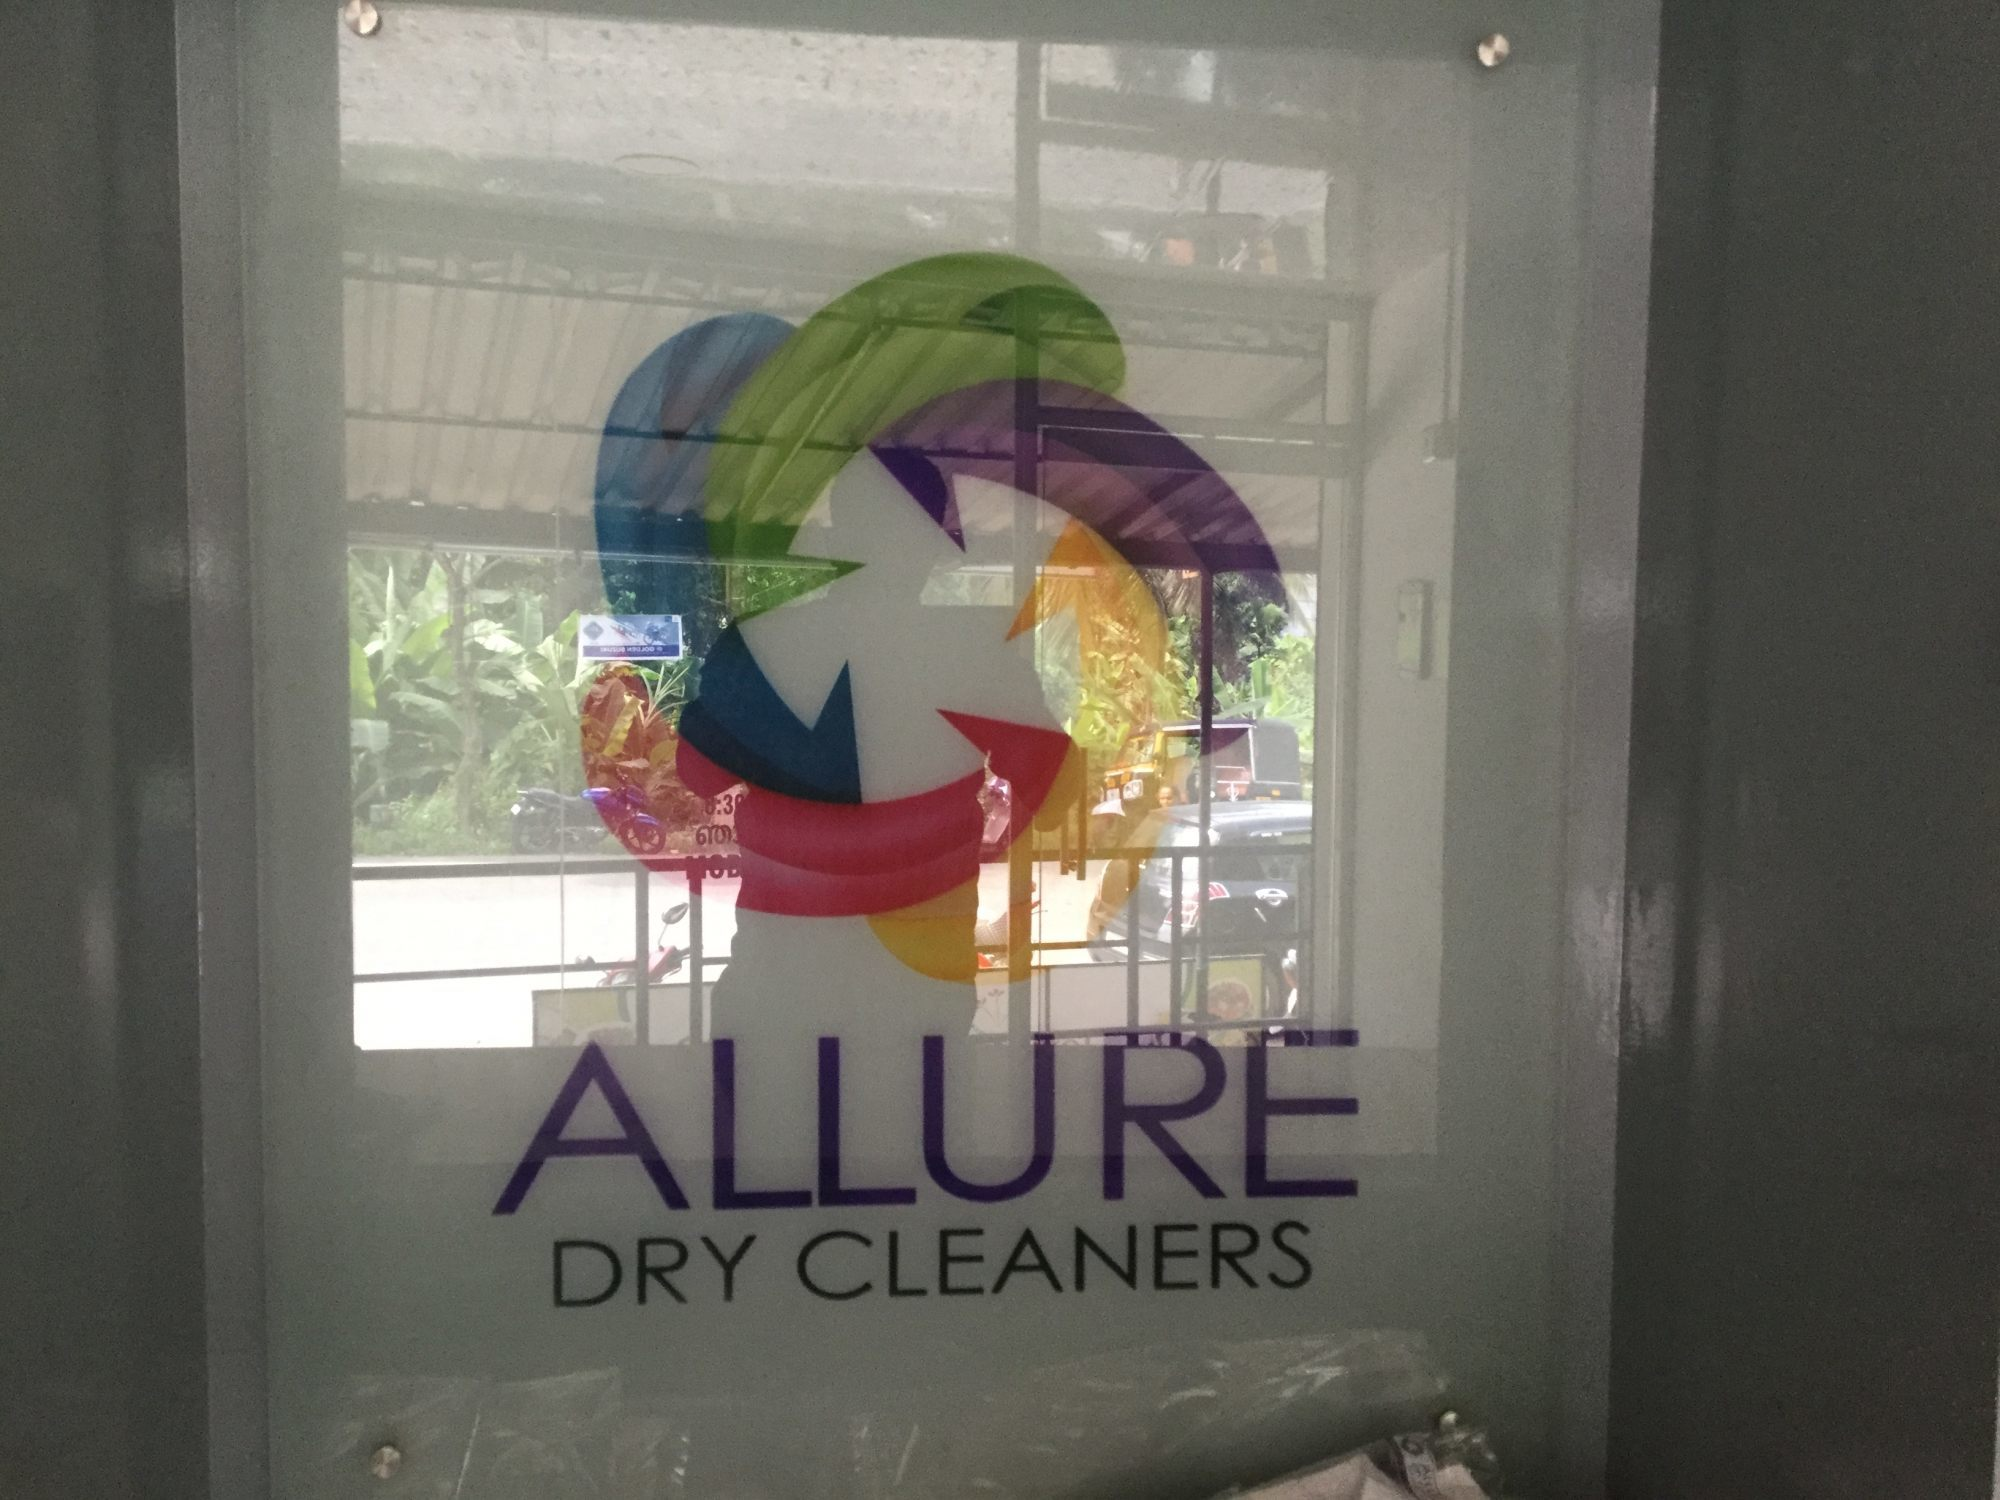 ALLURE DRY CLEANERS, DRY CLEANING,  service in Pathanamthitta, Pathanamthitta